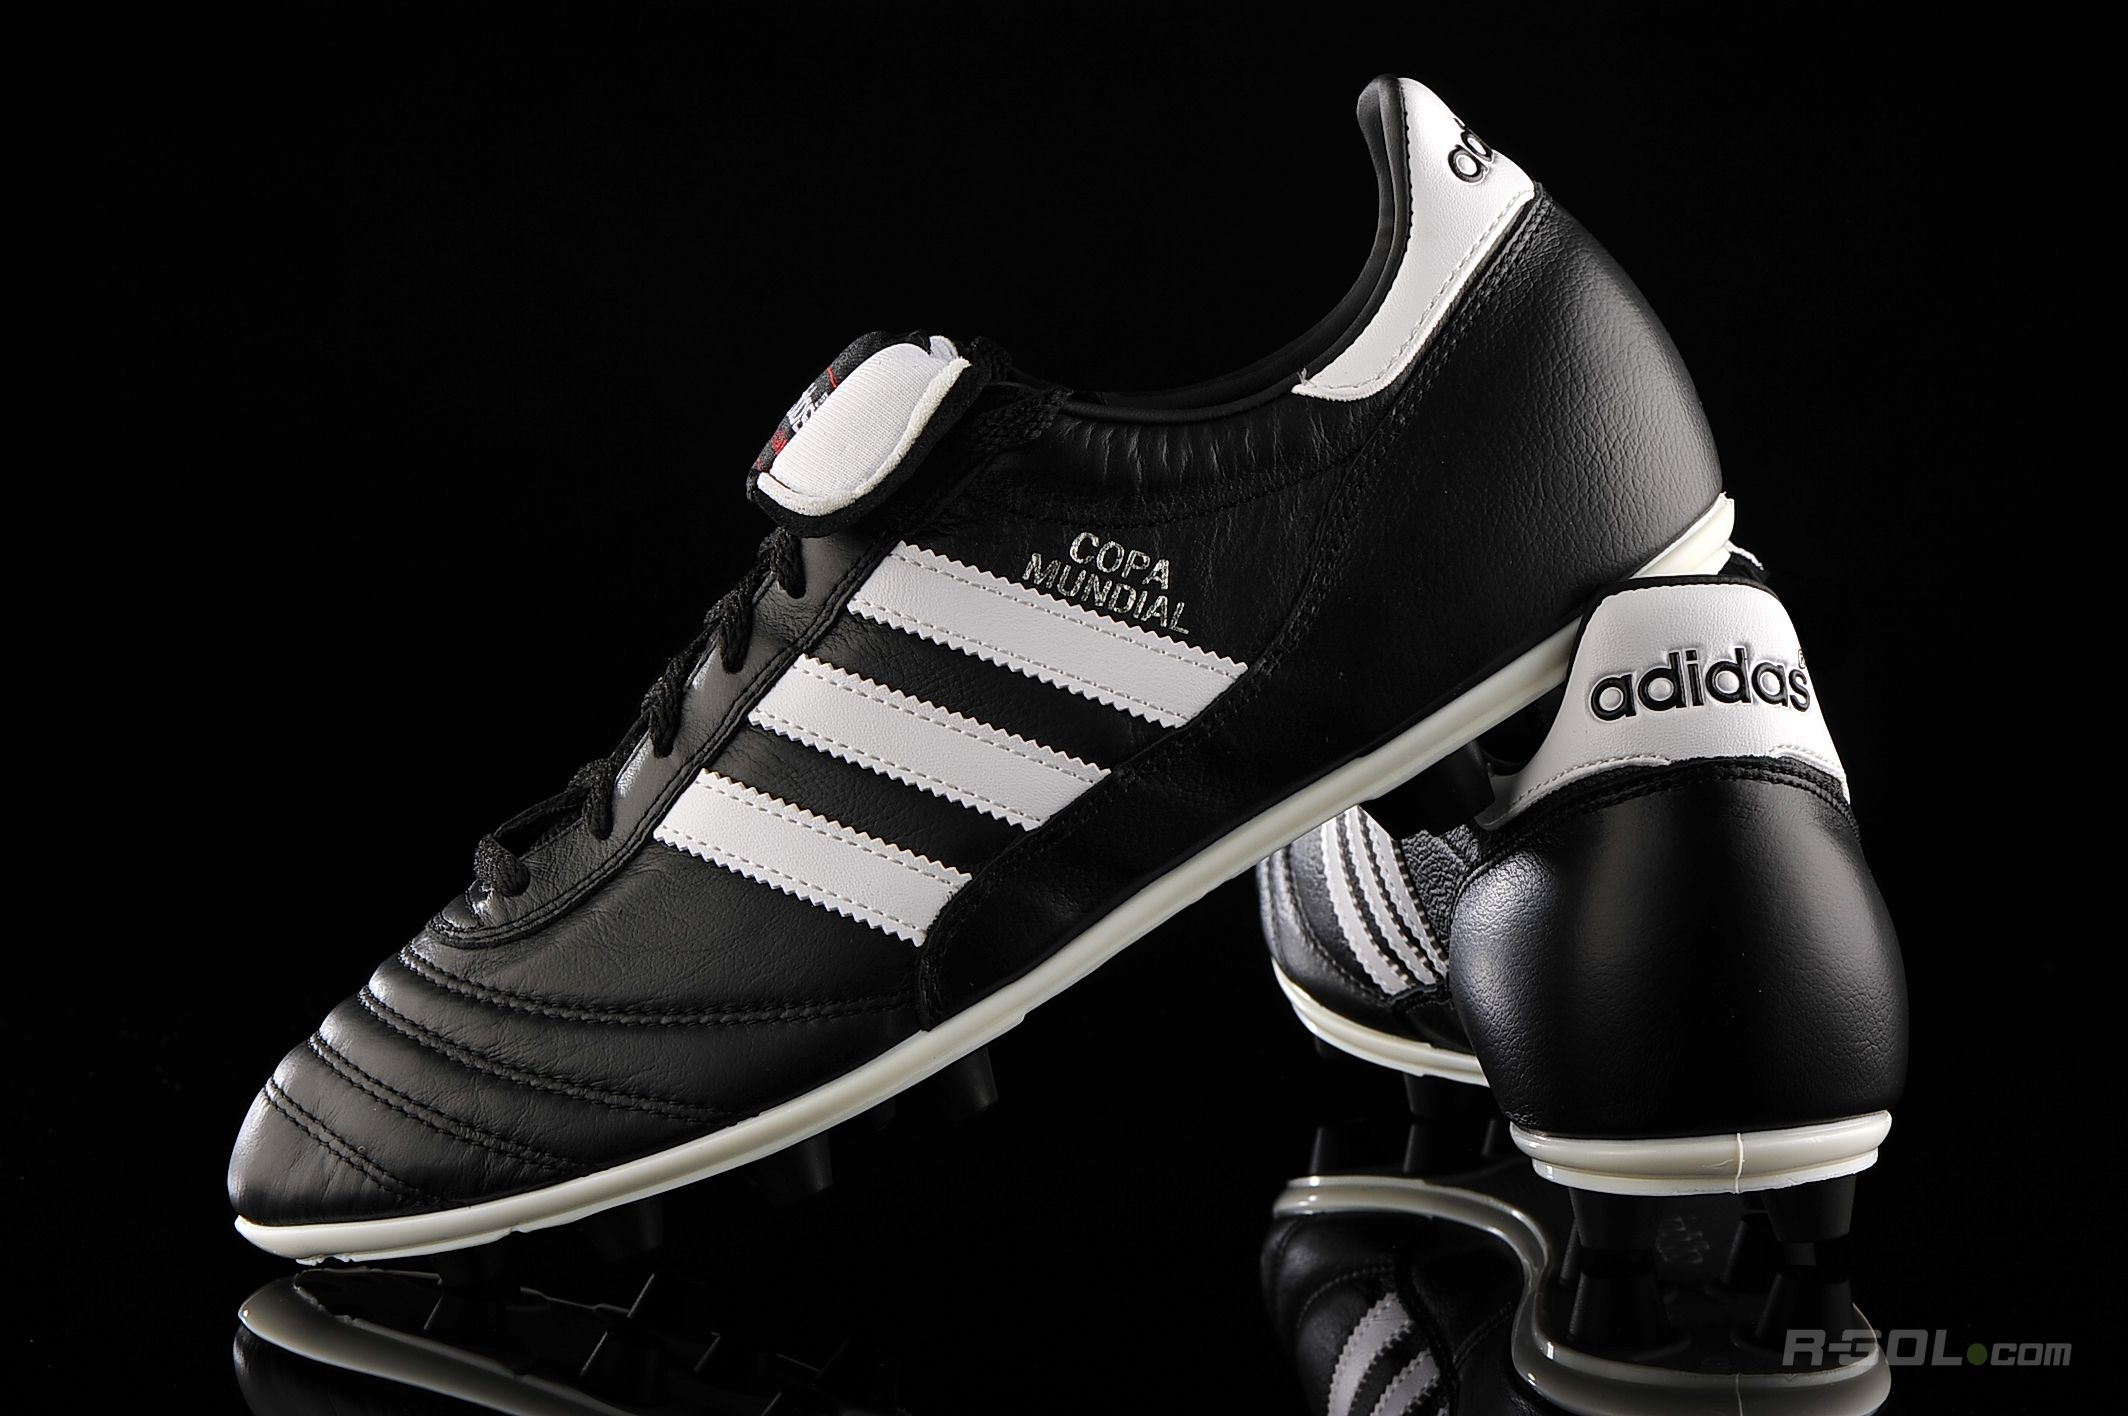 copa mundial kreedon best football shoes